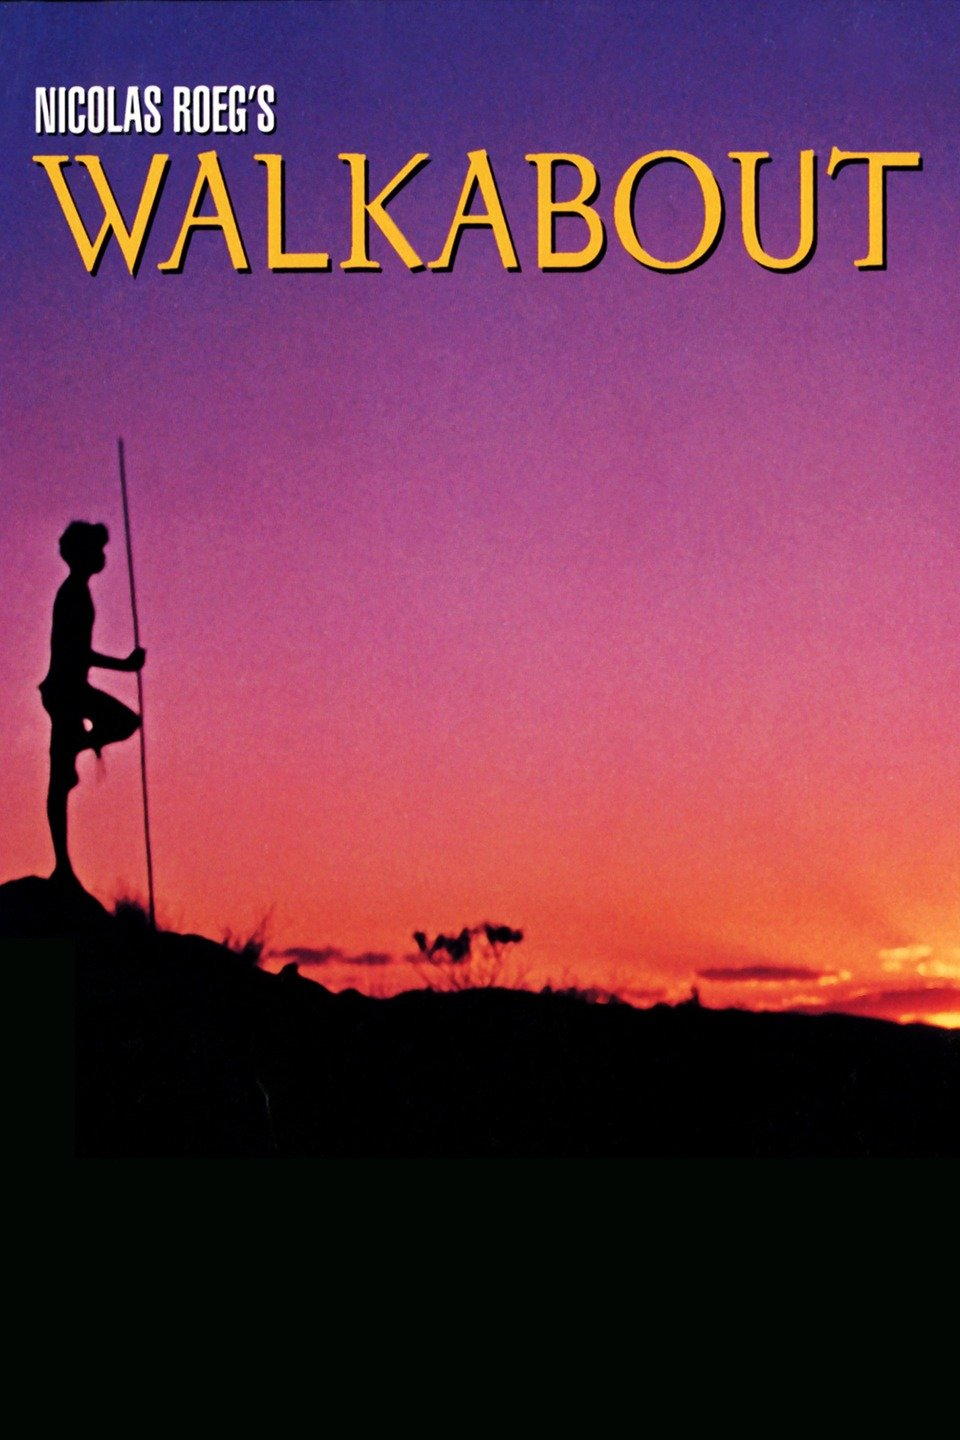 walkabout poster.jpg